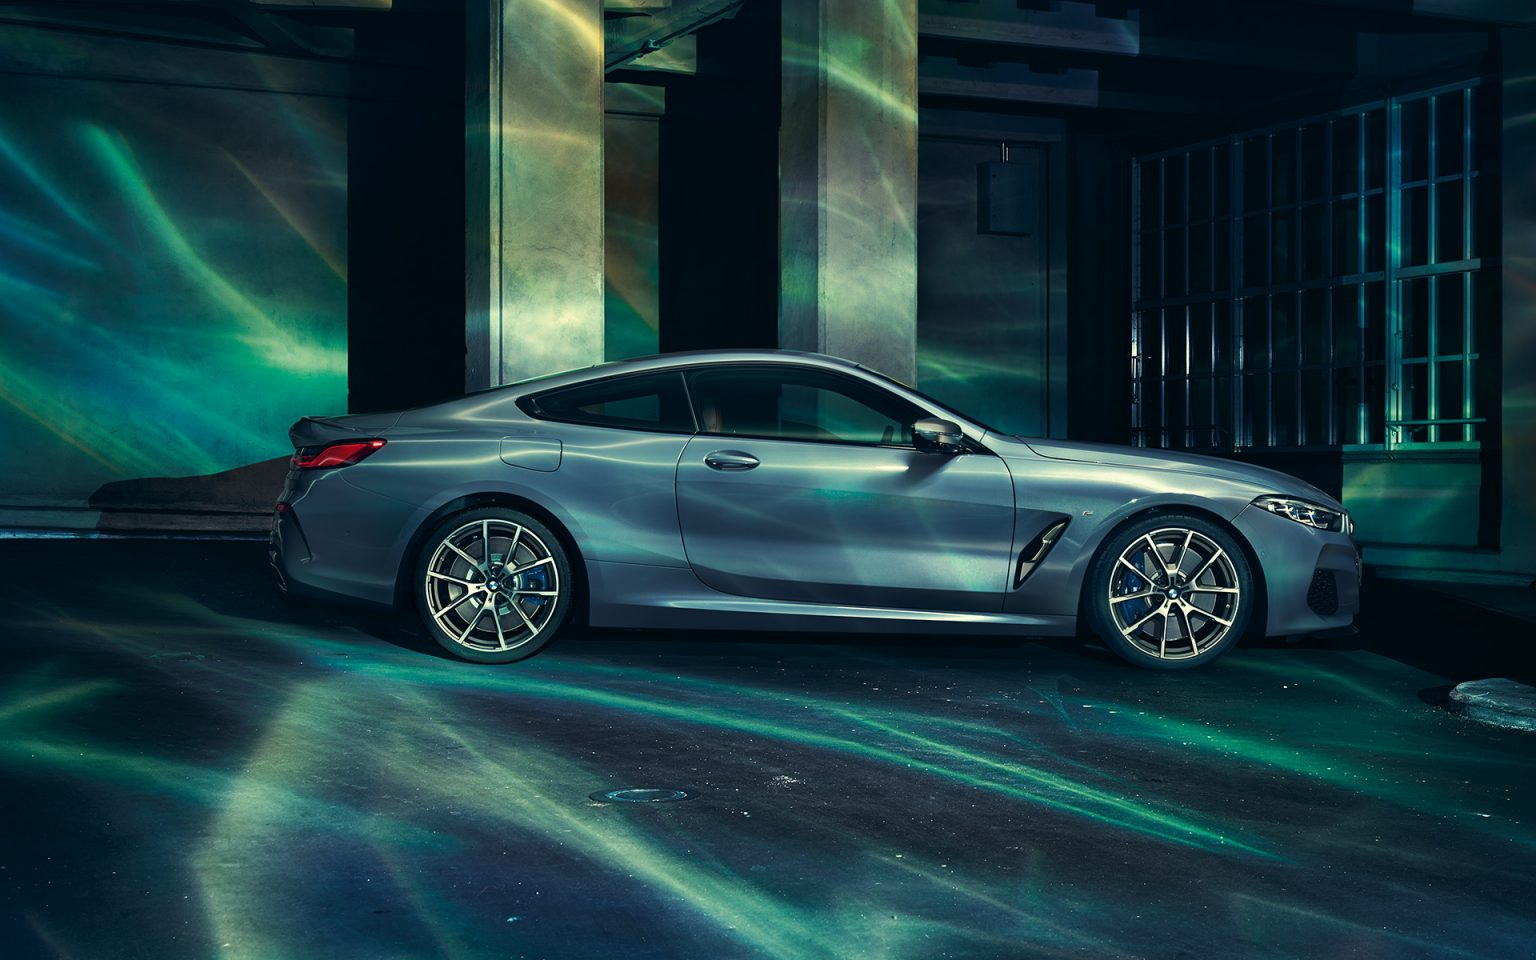 bmw-8series-coupe-gallery-wallpaper-04.jpg.asset.1527577199013